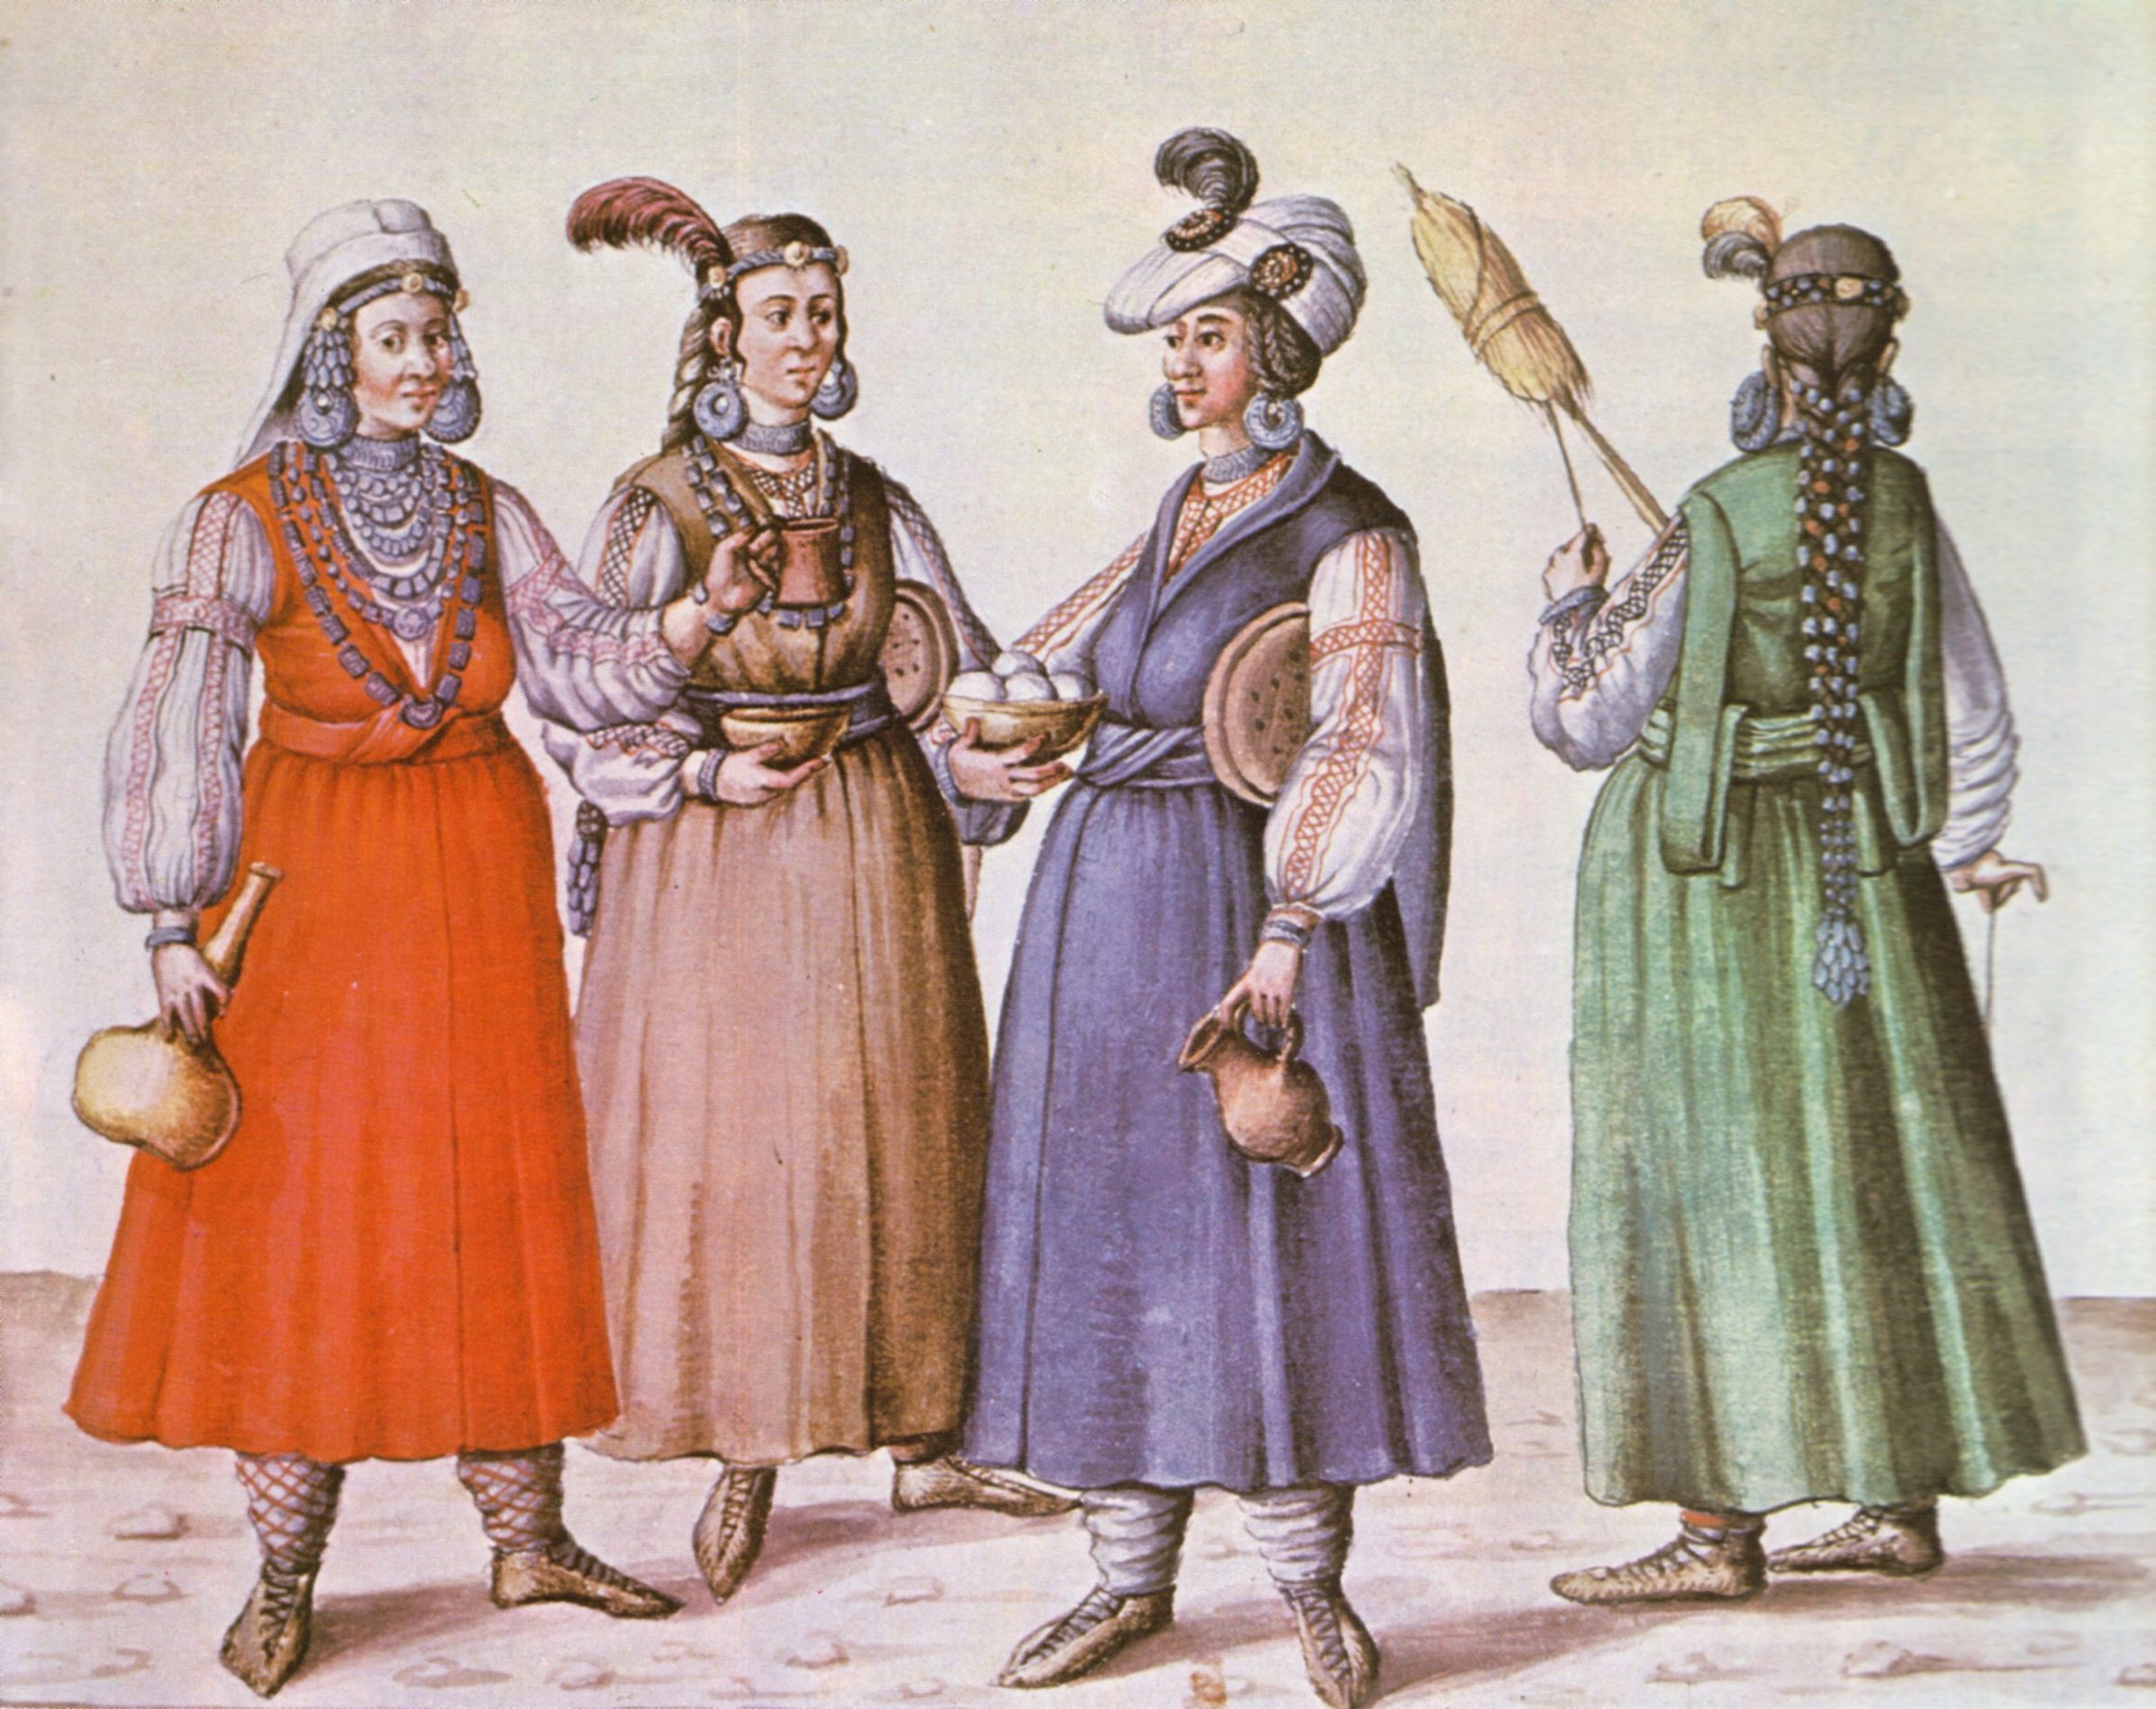 Bulgaria Girls http://en.wikipedia.org/wiki/File:Bulgarian_women_1586.jpg